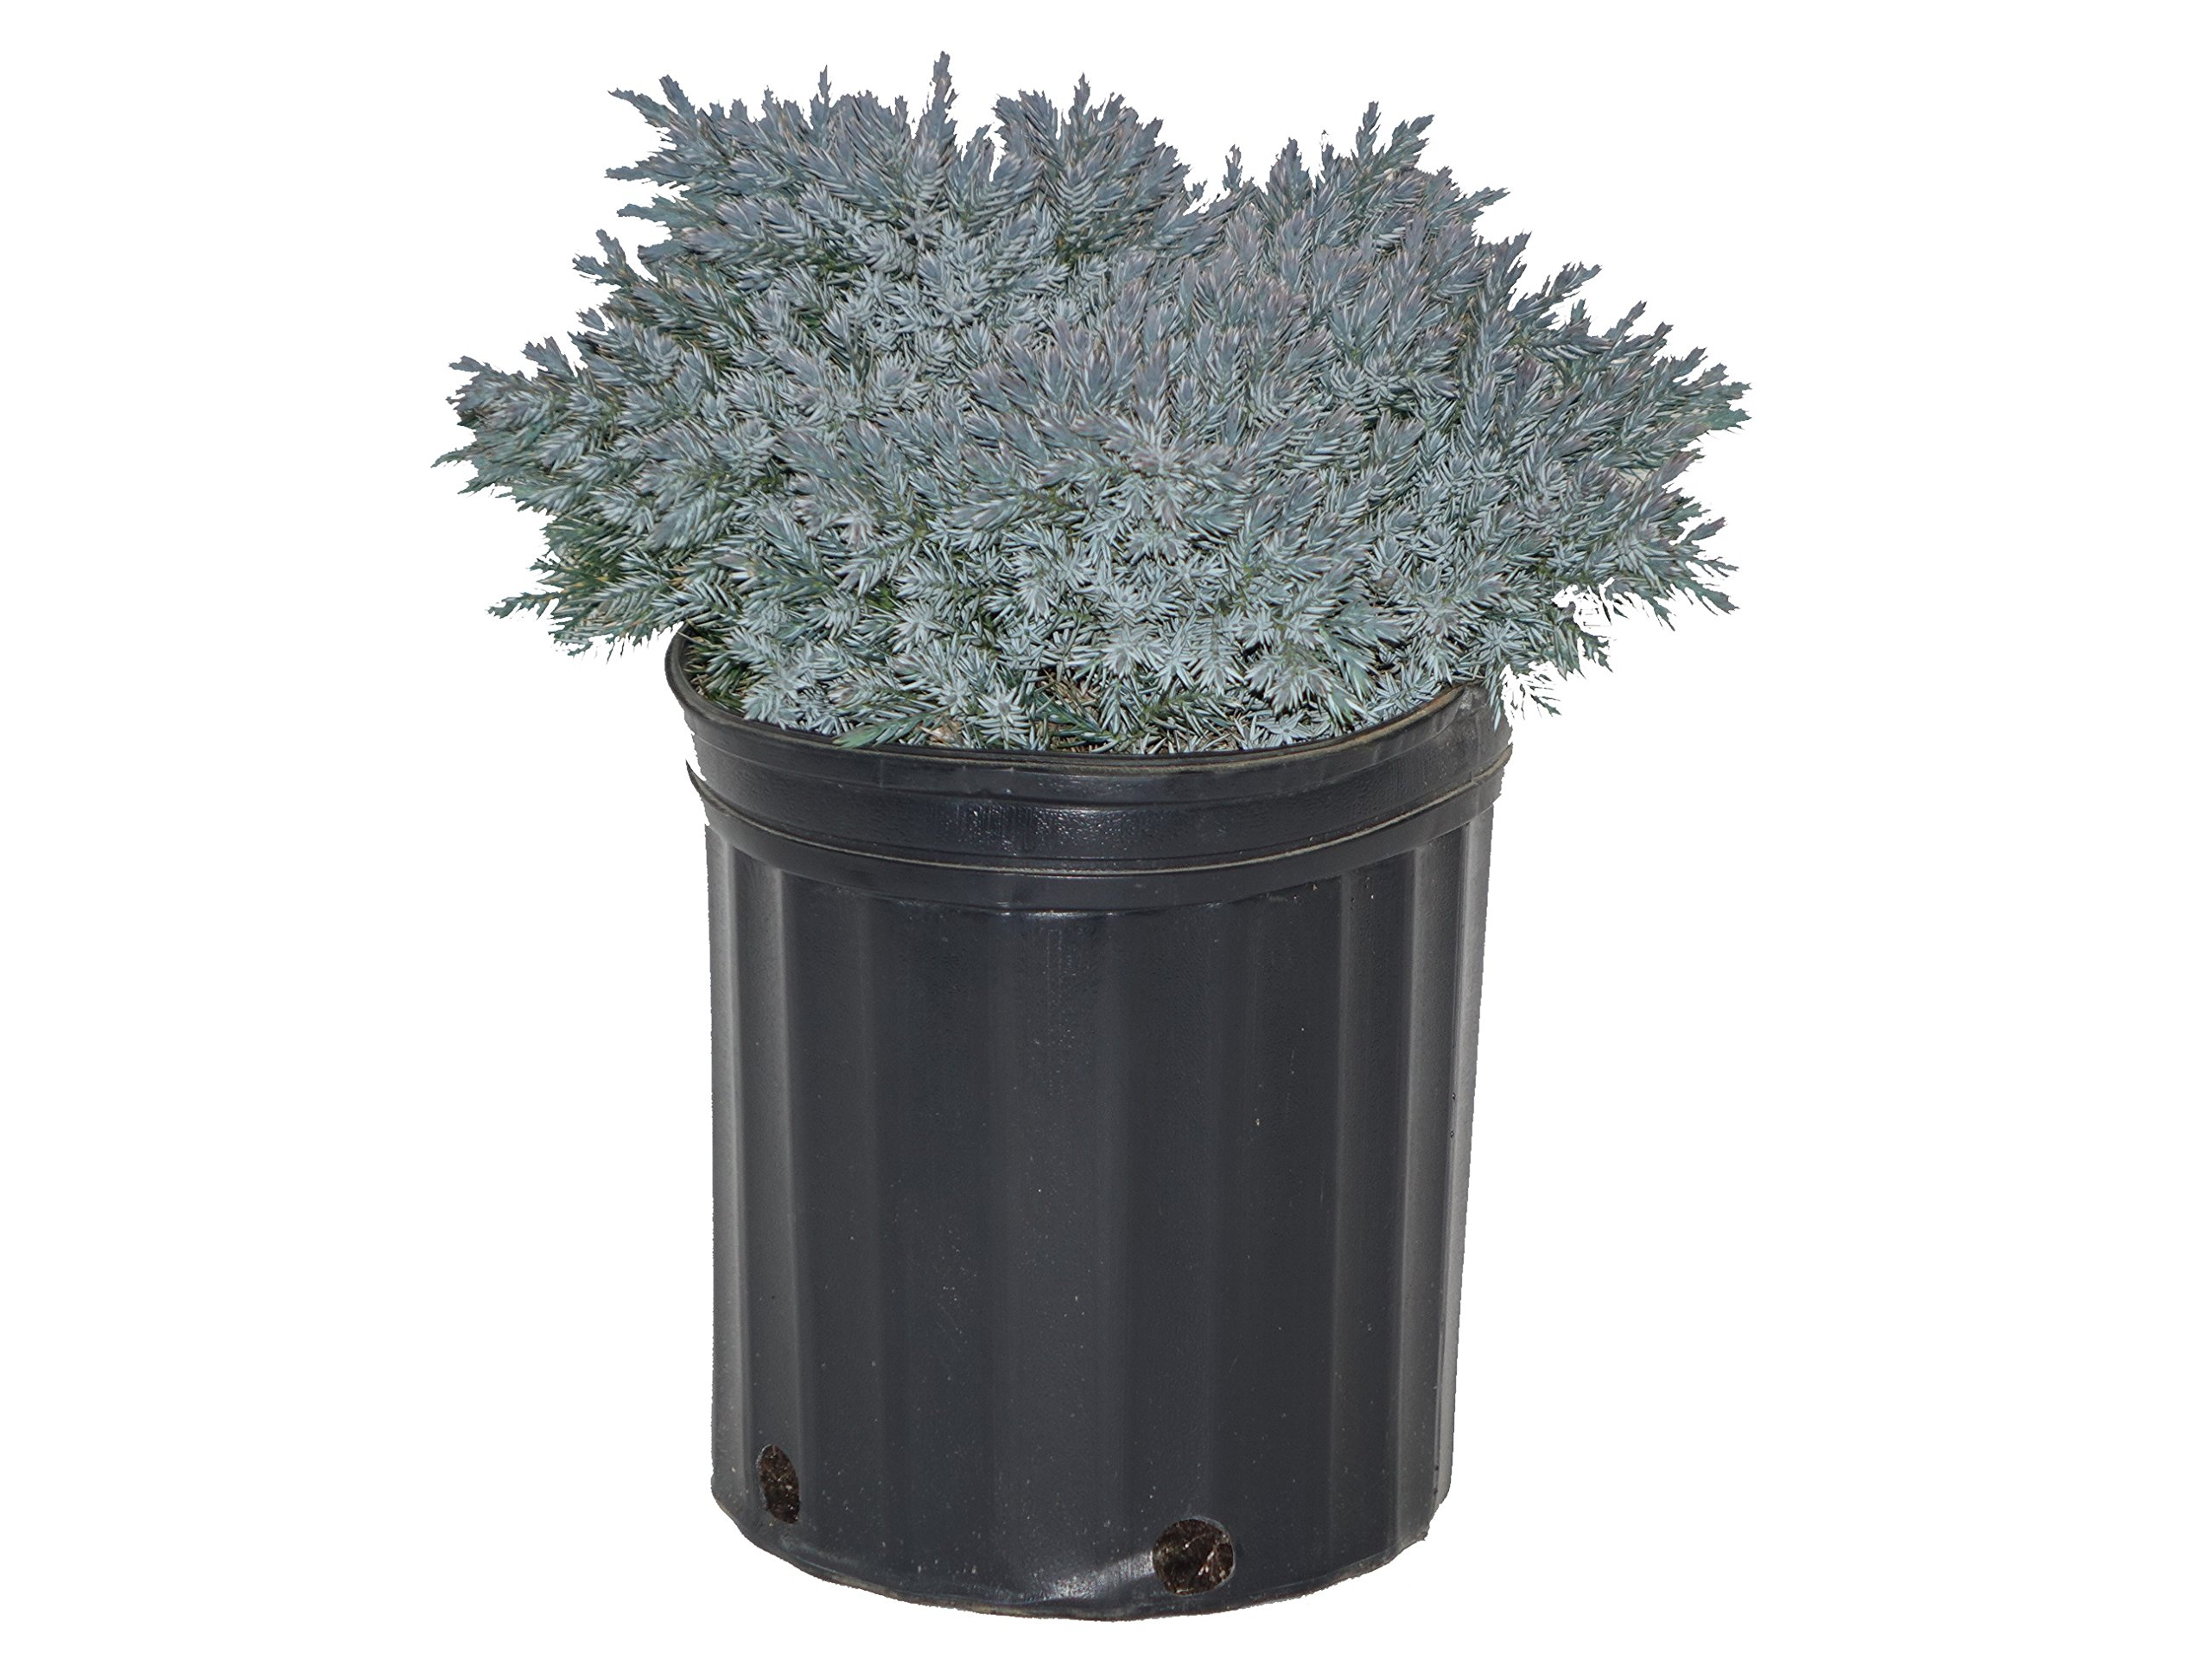 Juniperus Squamata 'Blue Star' (Juniper) Evergreen, 2 - Size Container